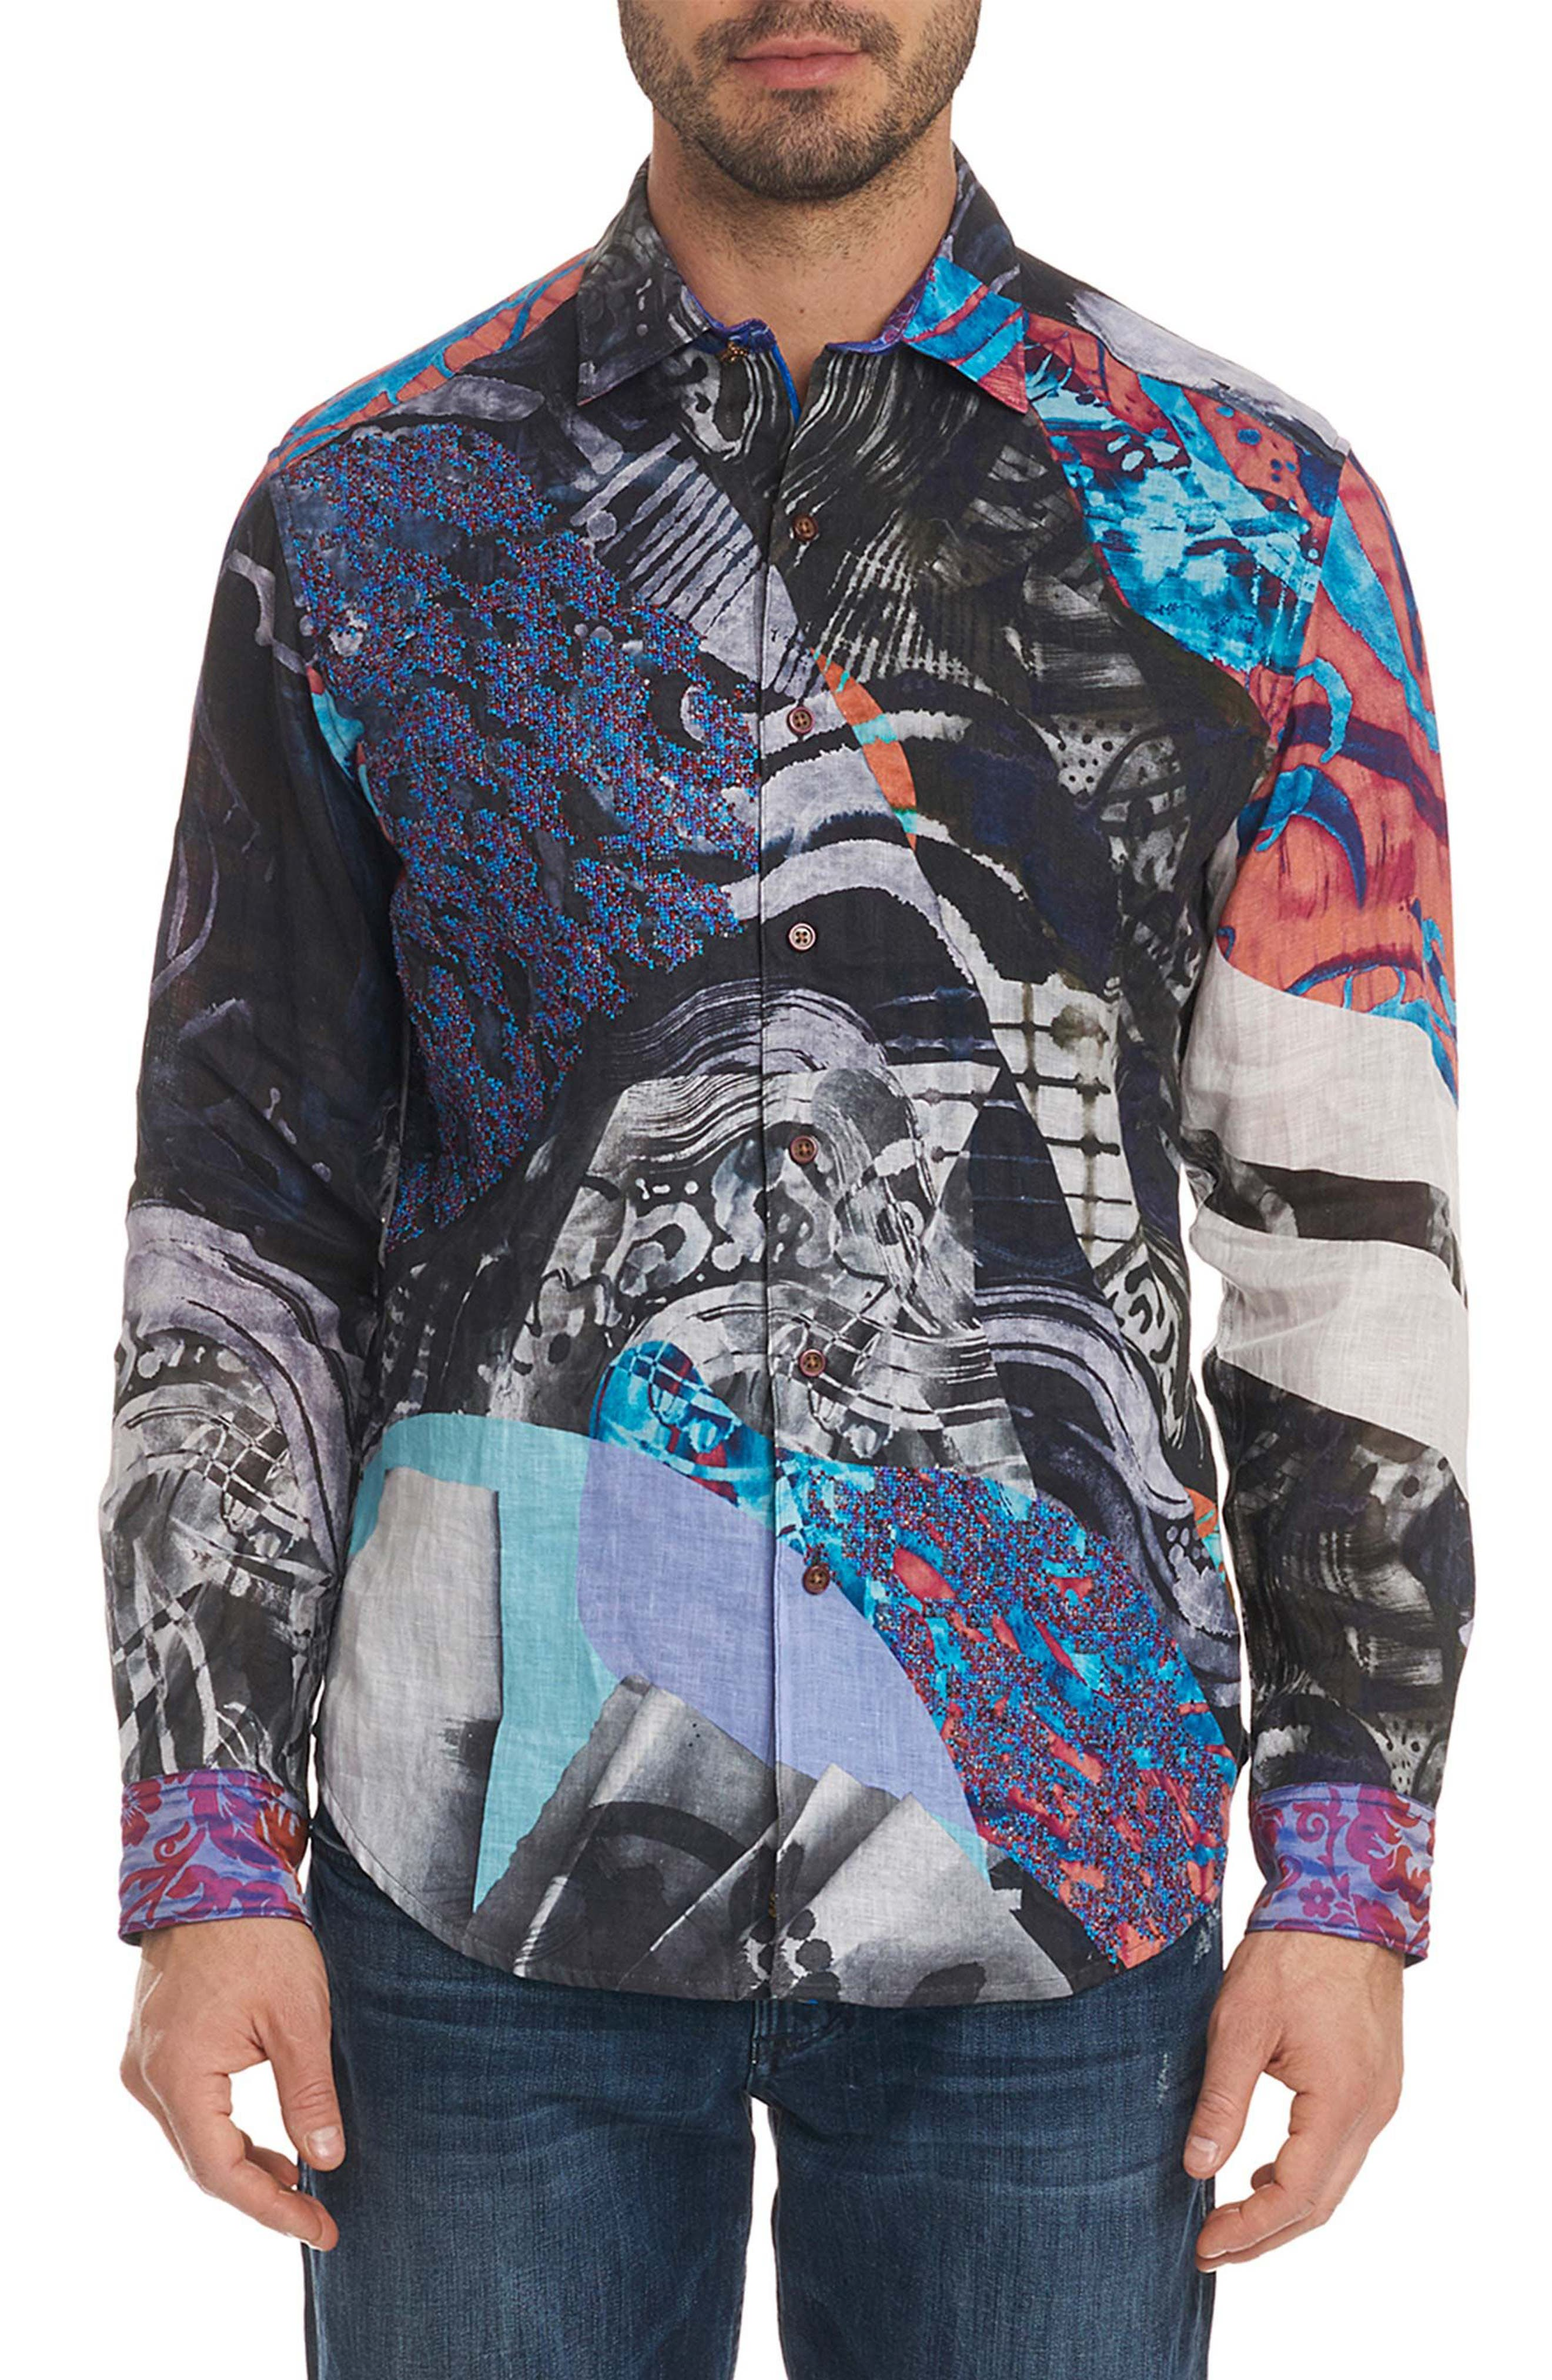 Hooked on You Limited Edition Sport Shirt,                             Main thumbnail 1, color,                             Multi